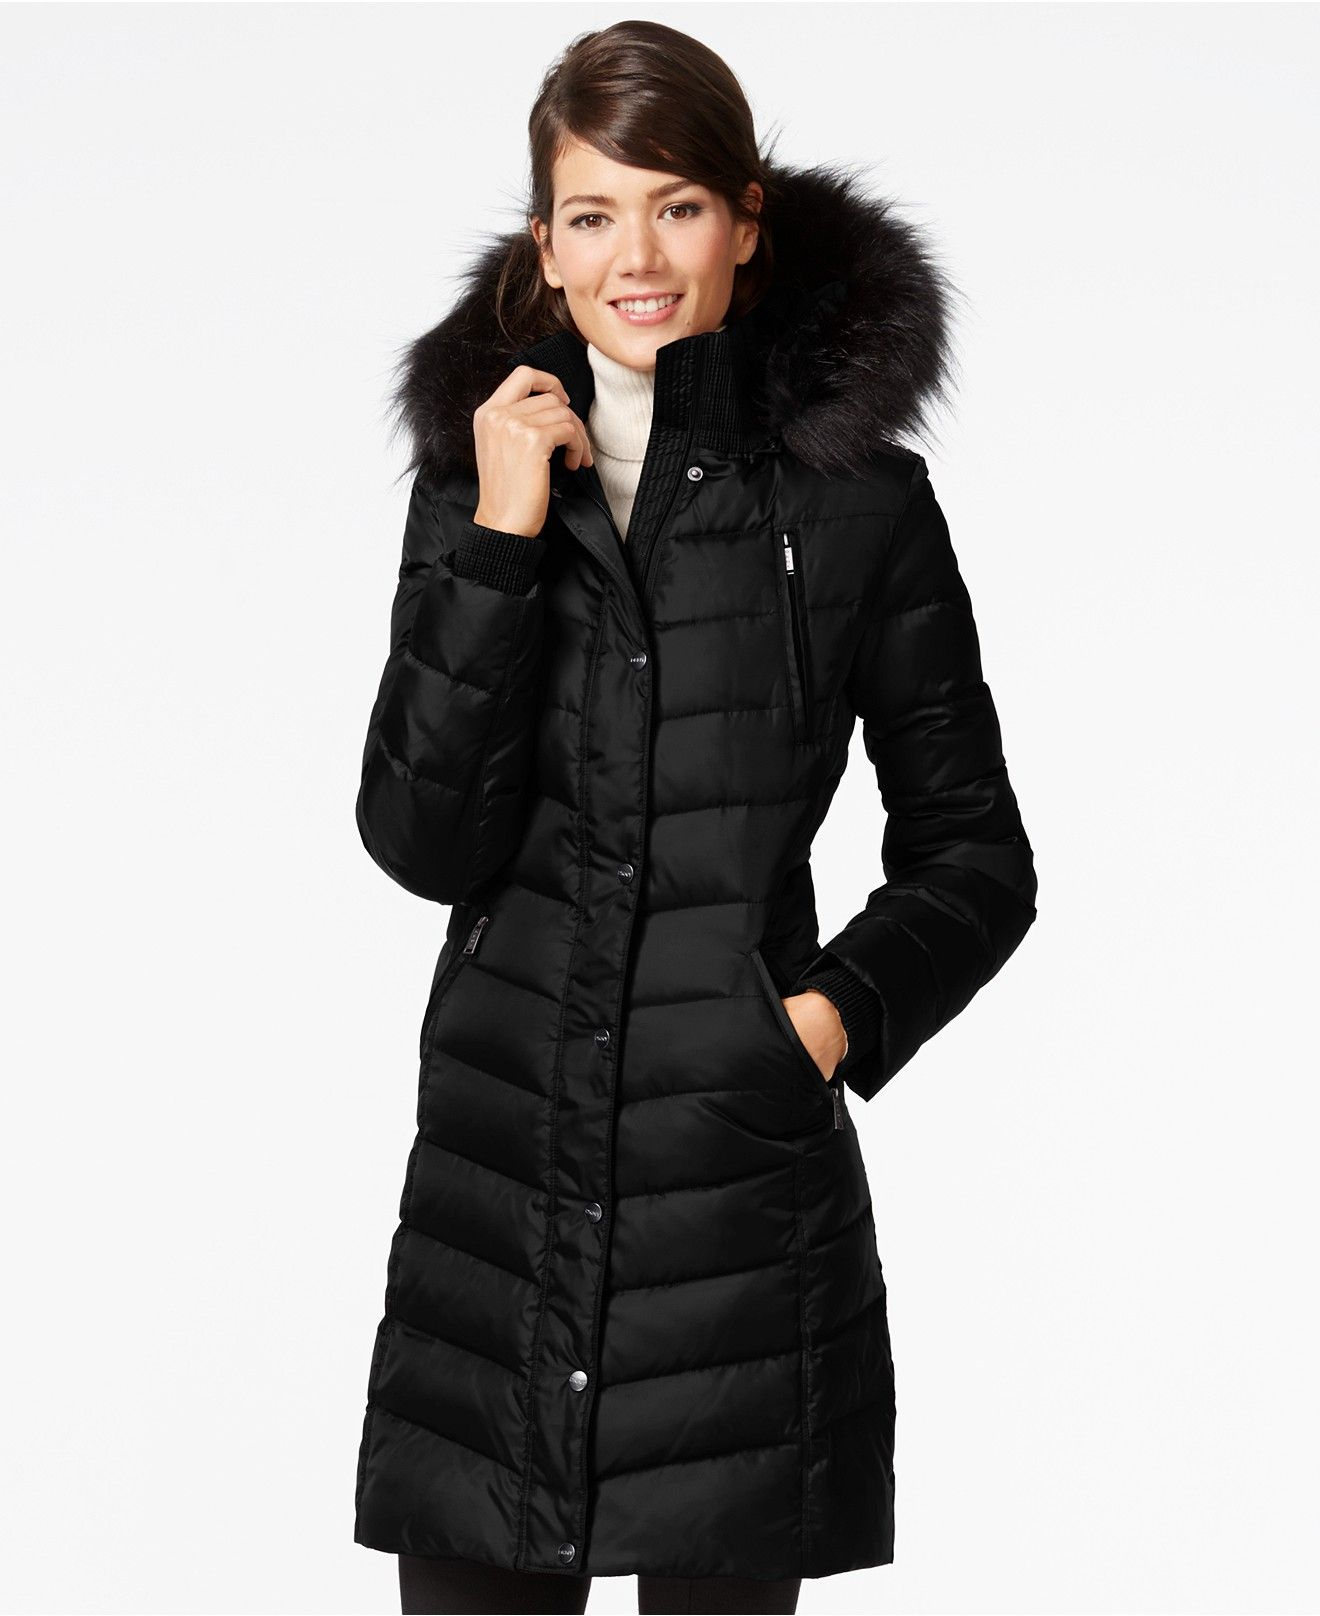 3049e625431 DKNY Faux-Fur-Trim Hooded Down Puffer Coat - Coats - Women - Macy's ...